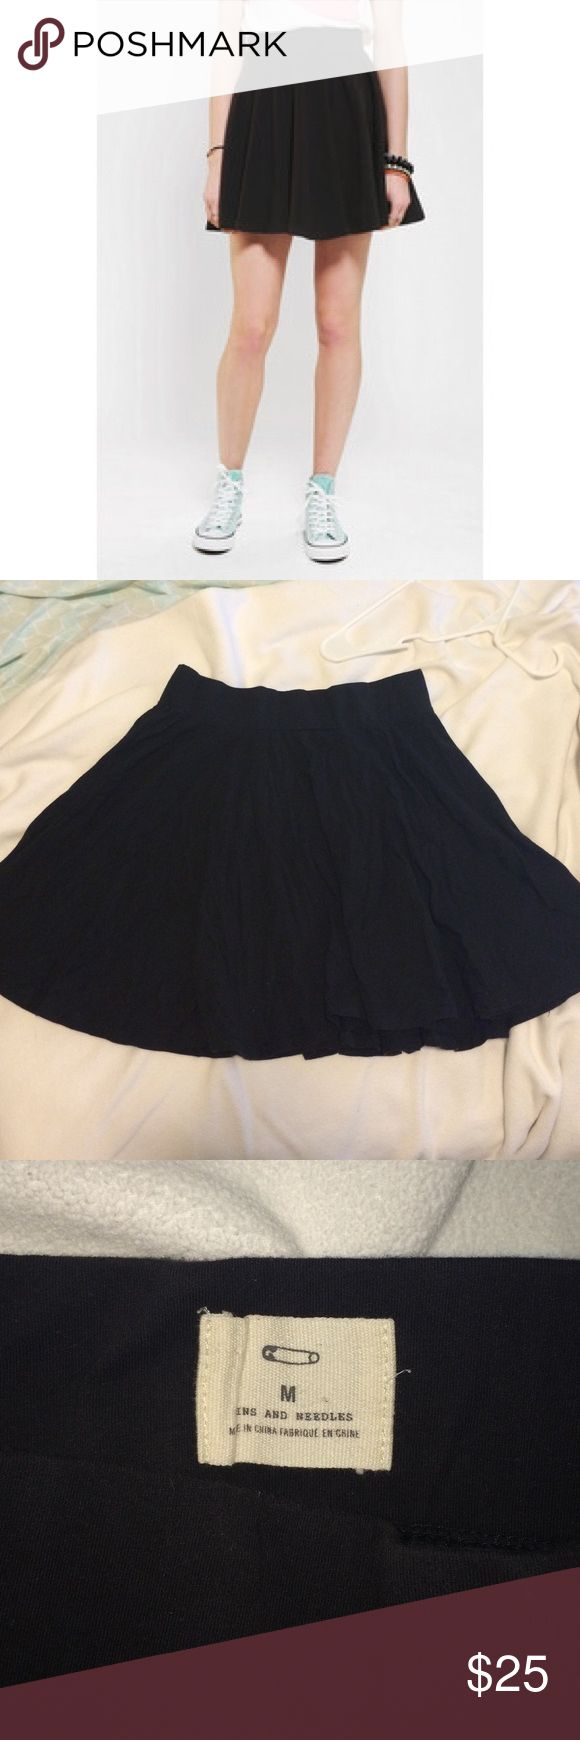 Pins and Needles black skater skirt urban outfitters black skater skirt with very stretchy waistband - in good condition. I wore a size 6-8 in jeans around this time so it should fit around that size Urban Outfitters Skirts Circle & Skater